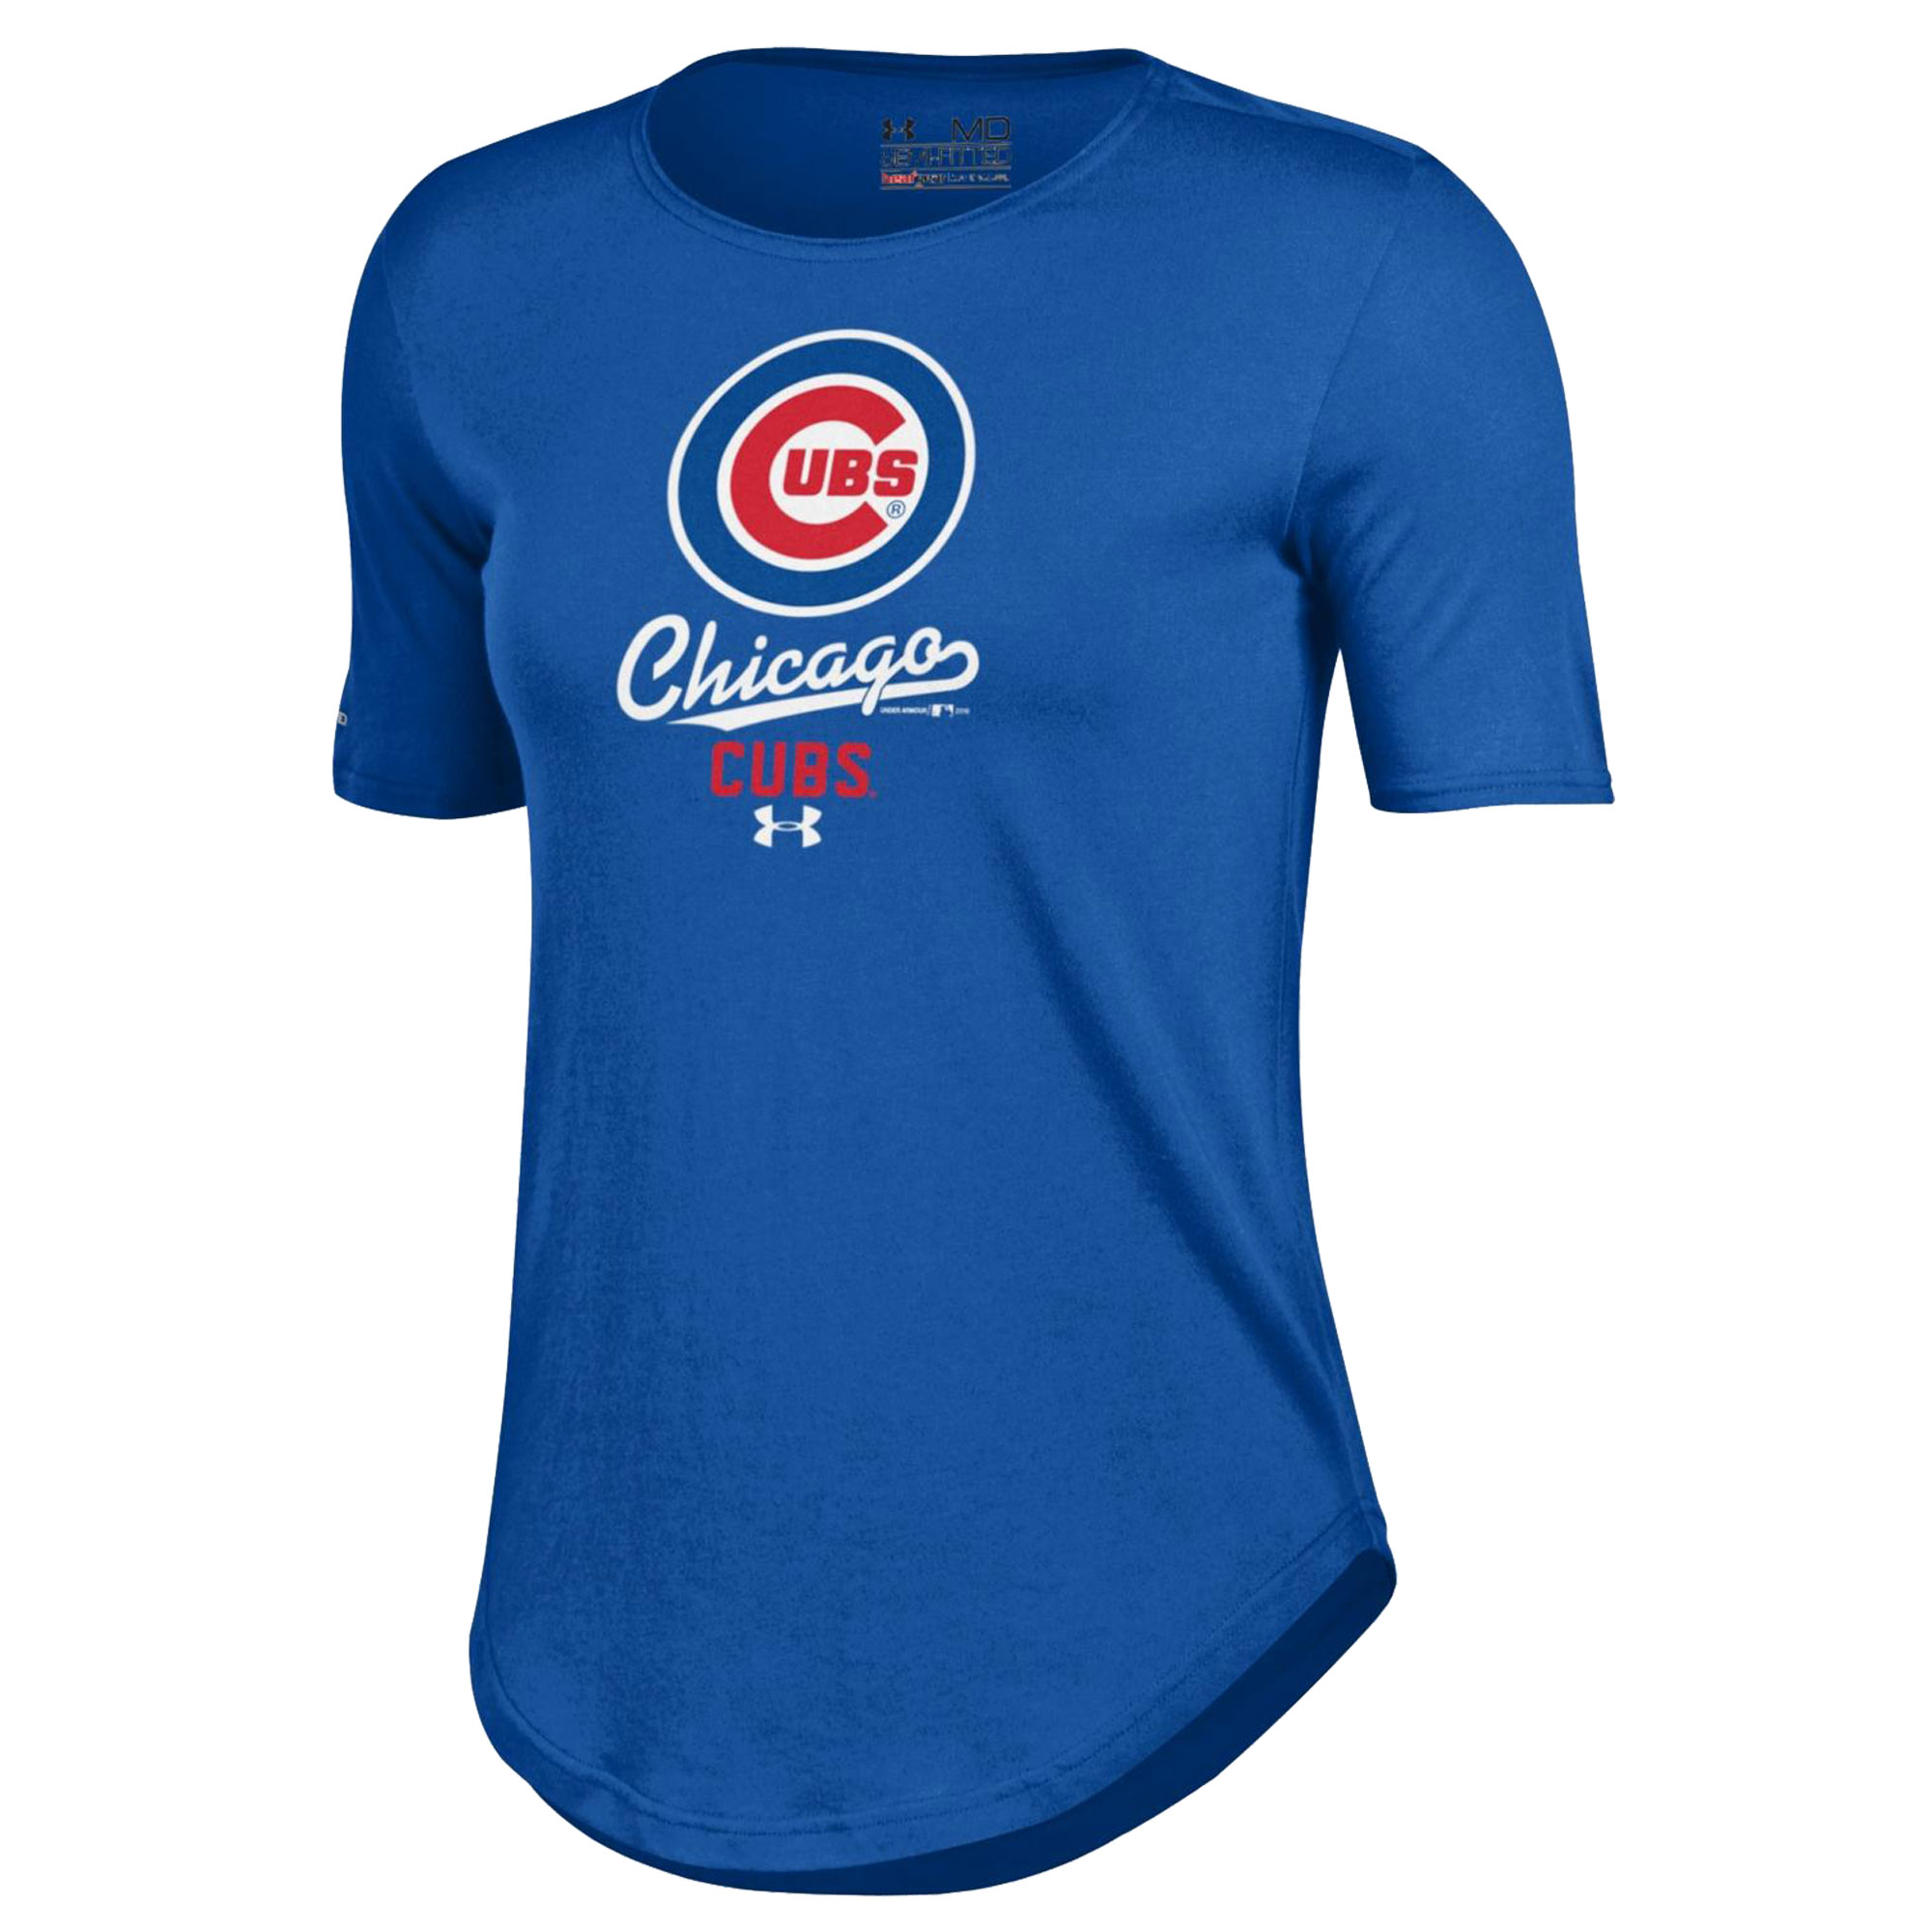 Chicago Cubs Under Armour Women's Crew Performance T-Shirt - Royal